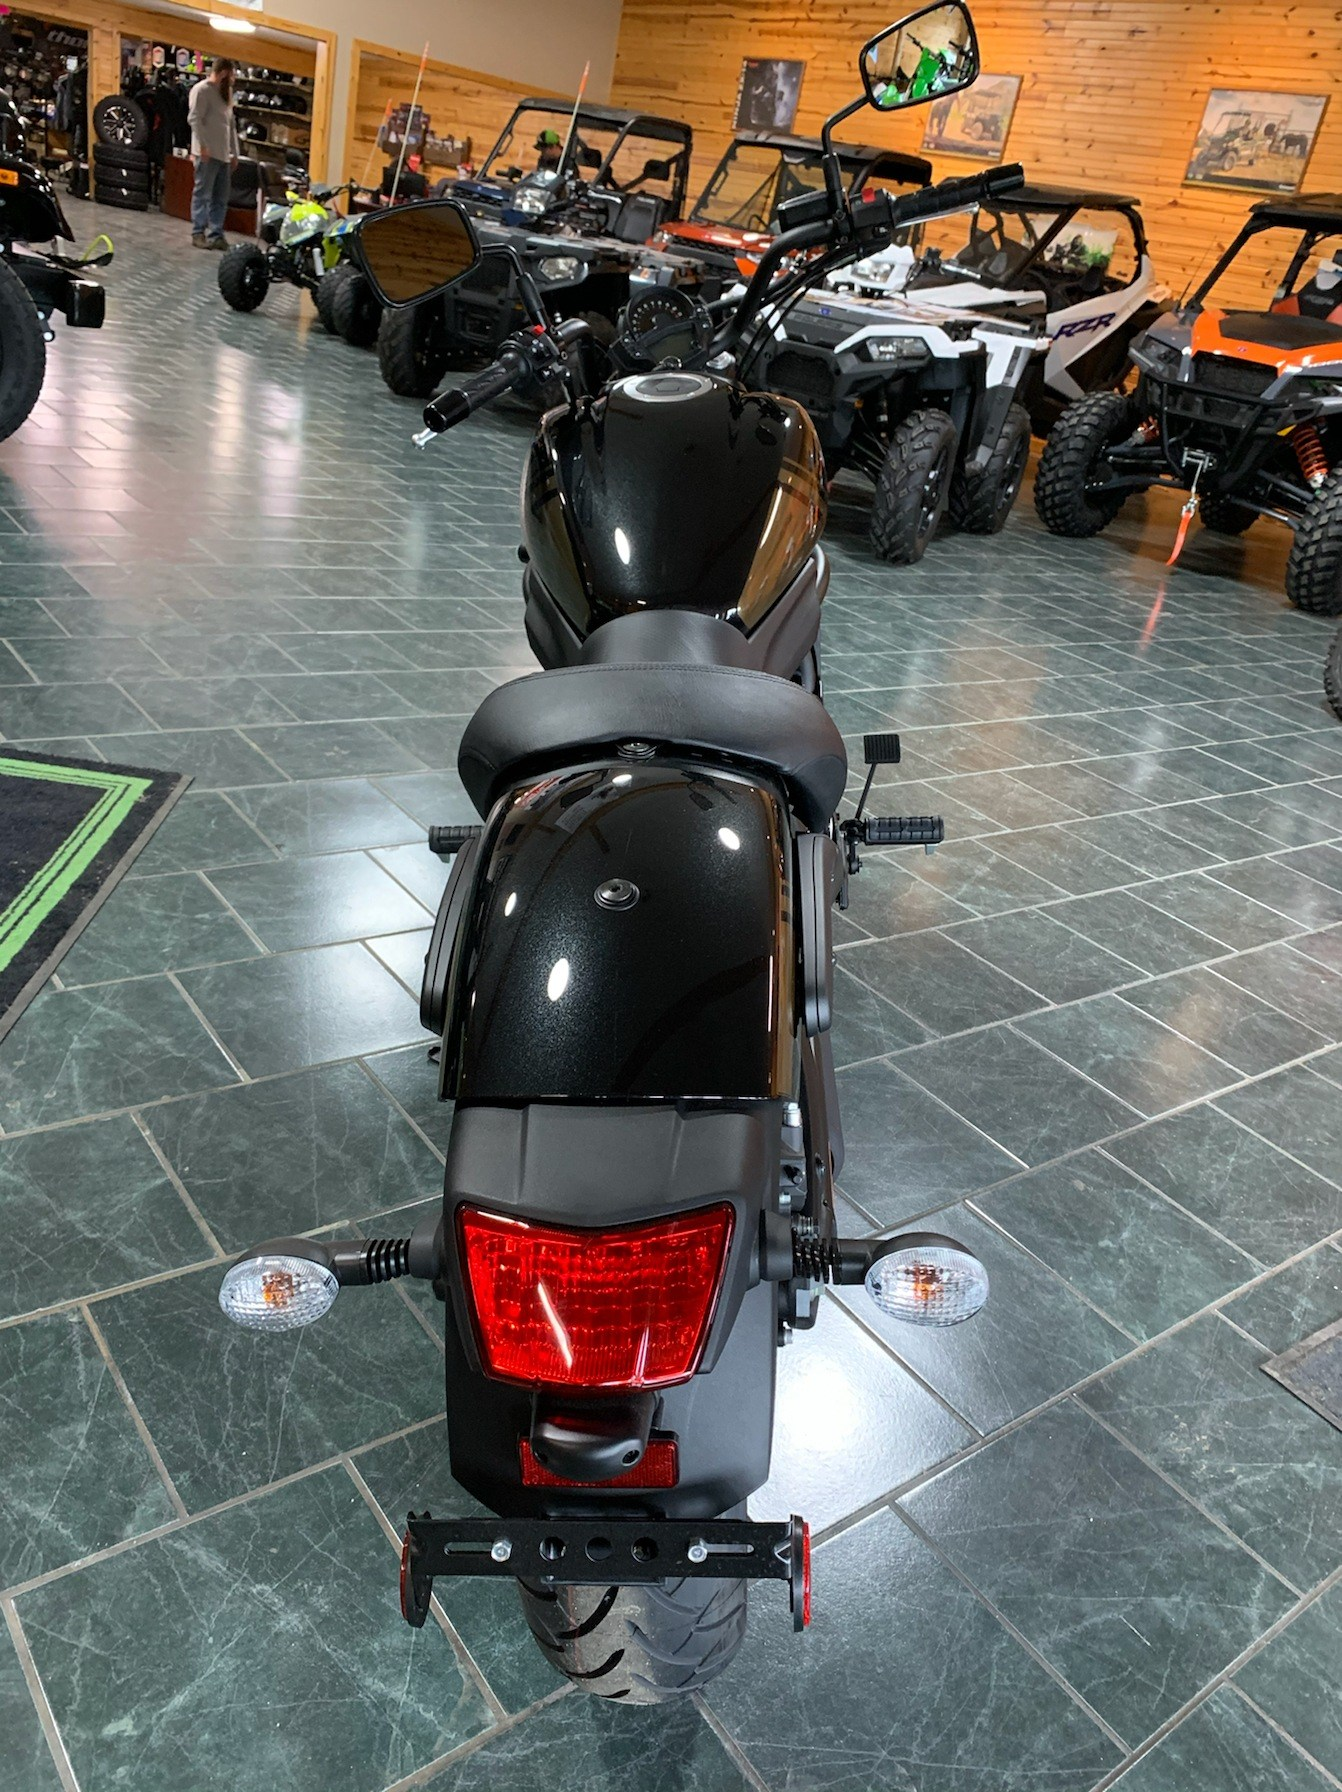 2020 Kawasaki Vulcan S in Mount Pleasant, Michigan - Photo 4